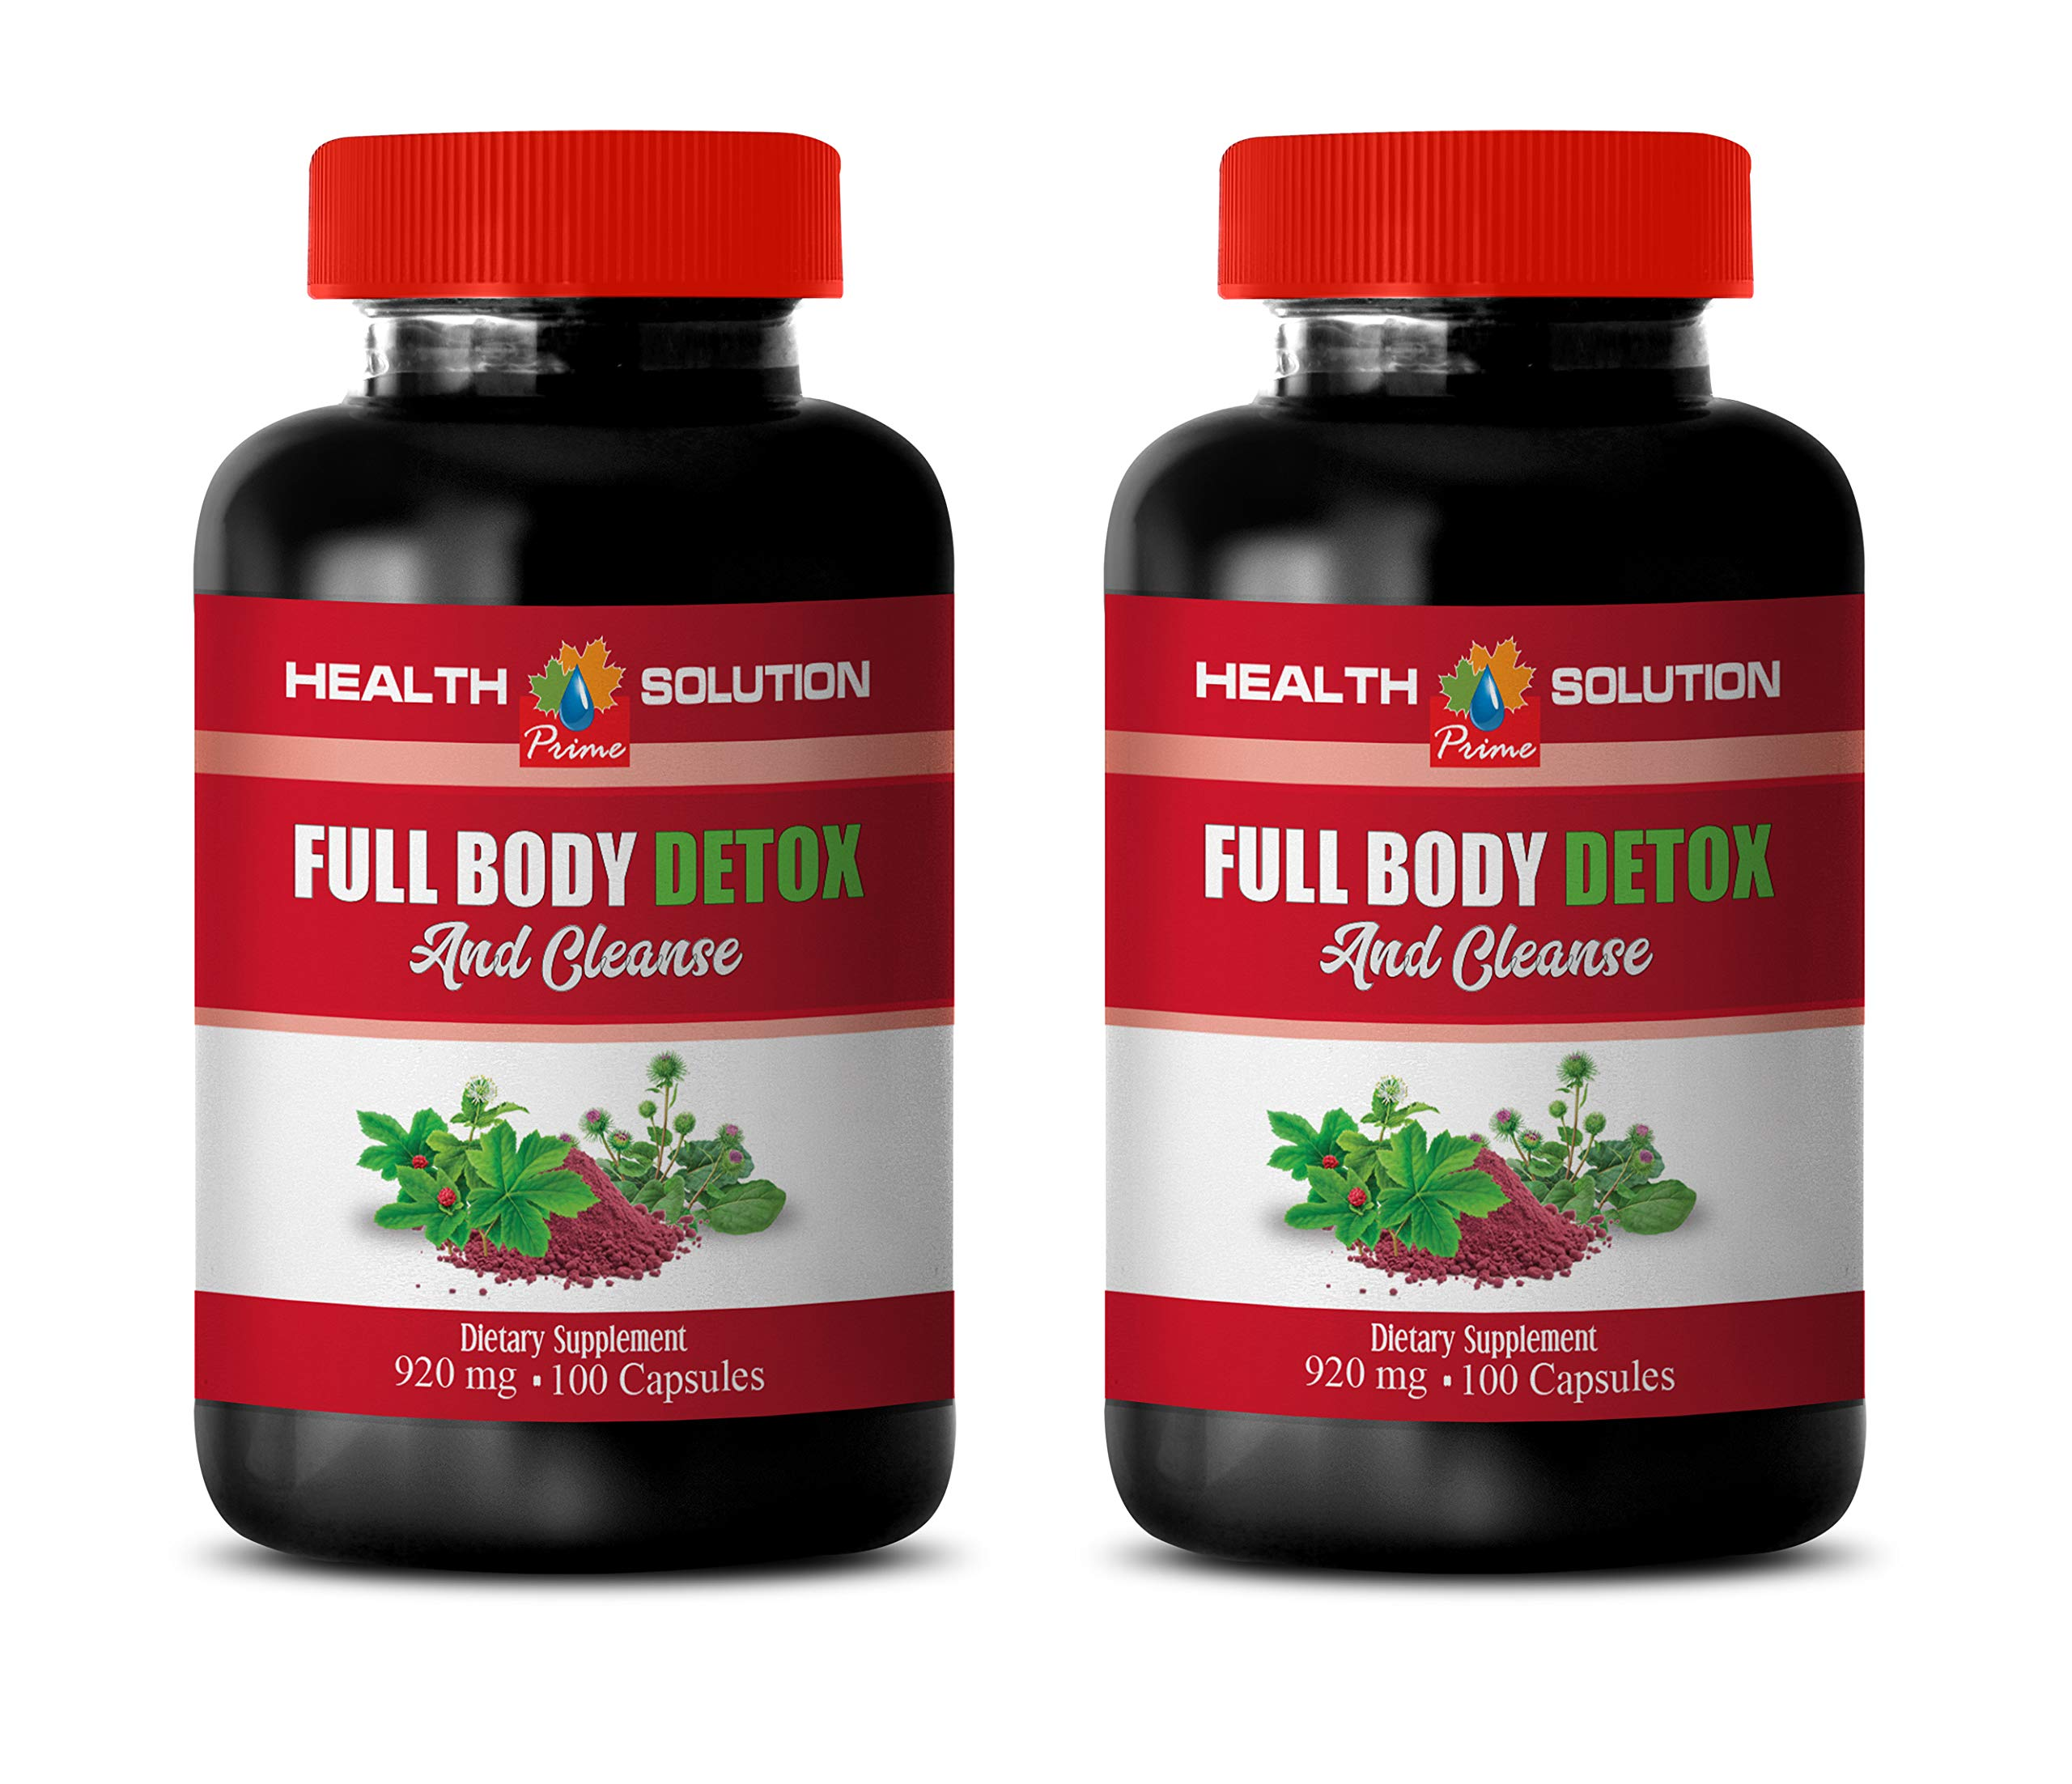 Detox Cleanse Weight Loss and Belly Fat - Full Body Detox and Cleanse 920 MG - Milk Thistle Herbal Supplement - 2 Bottles 200 Capsules